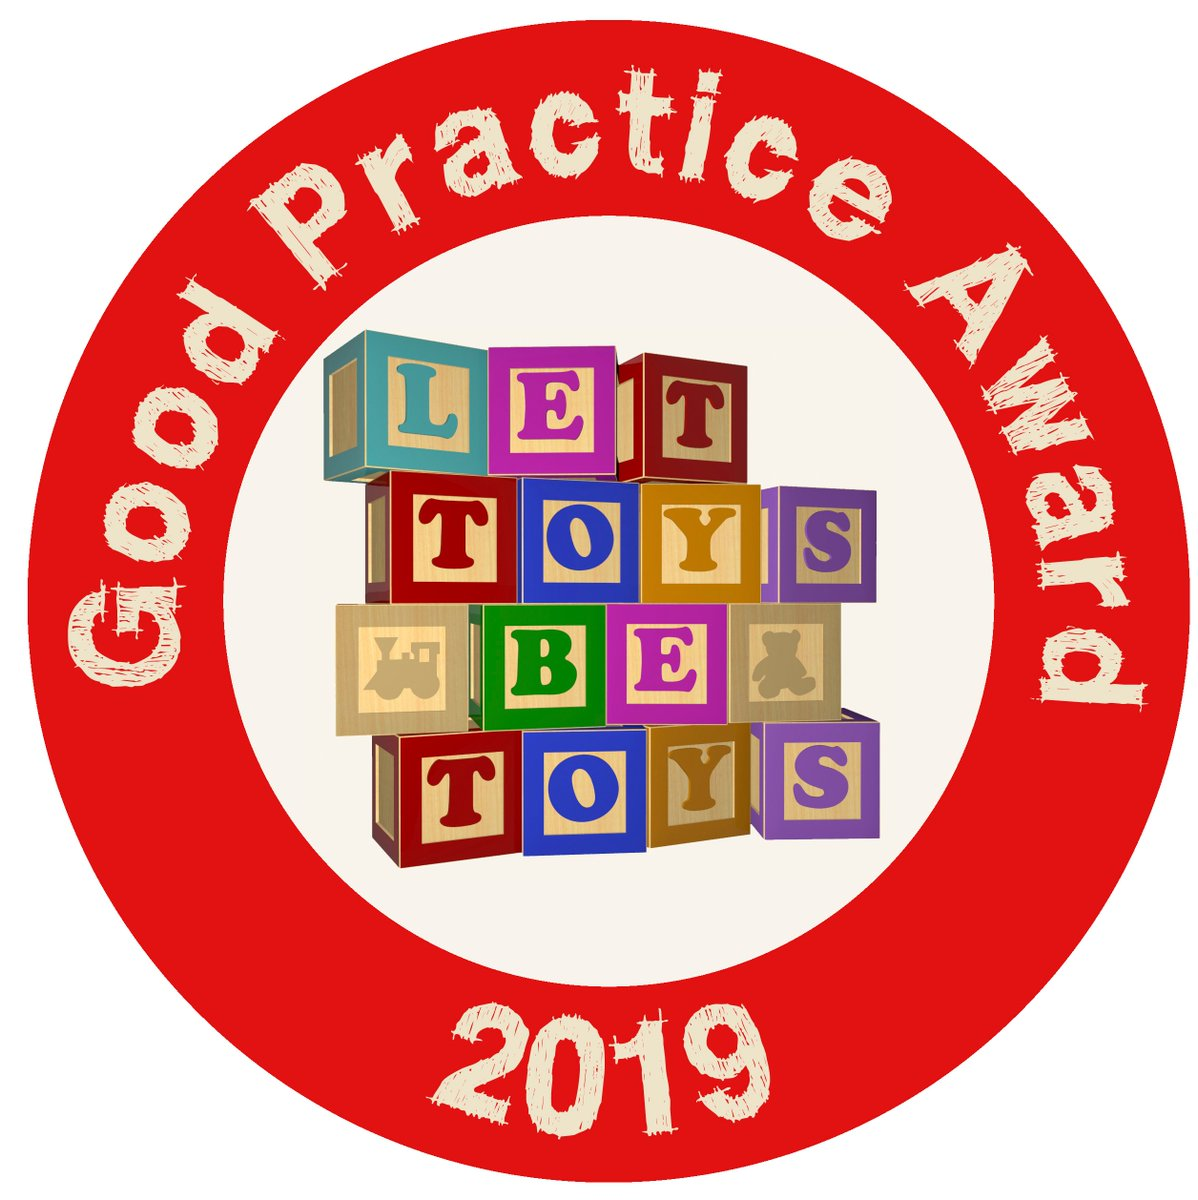 We are so pleased to have achieved the @LetToysBeToys Toymark award. When asked for book recommendations top of the list is what is the child interested in NOT are they a boy or a girl. @thebookseller @BAbooksellers @PublishersAssoc